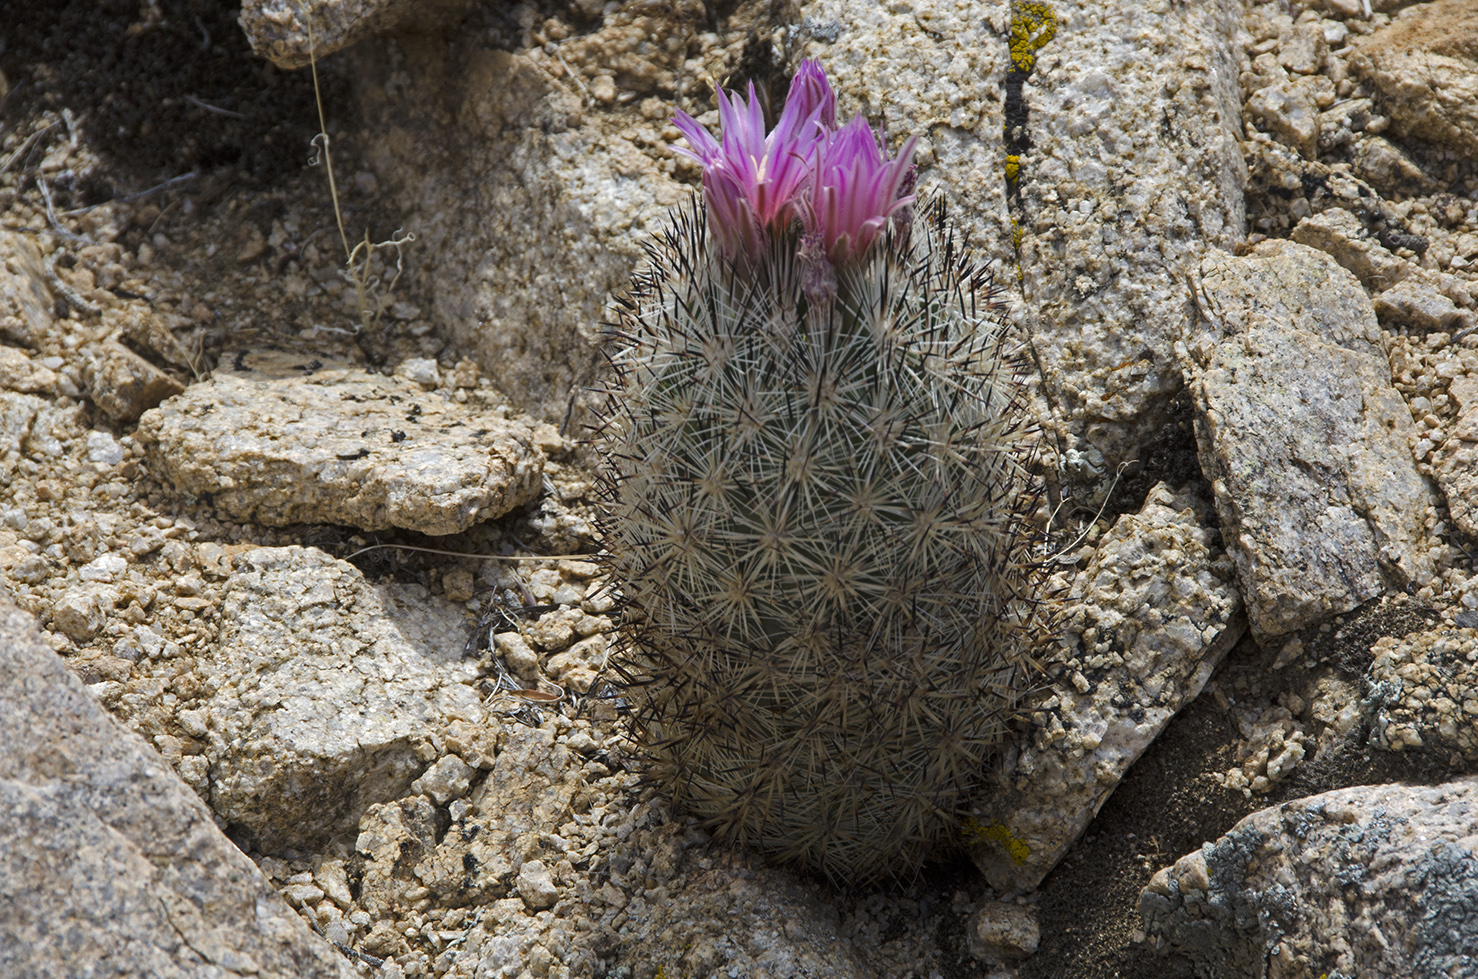 Desert Foxtail Cactus. Flowers can be yellow, yellow-green, or tinged pink.